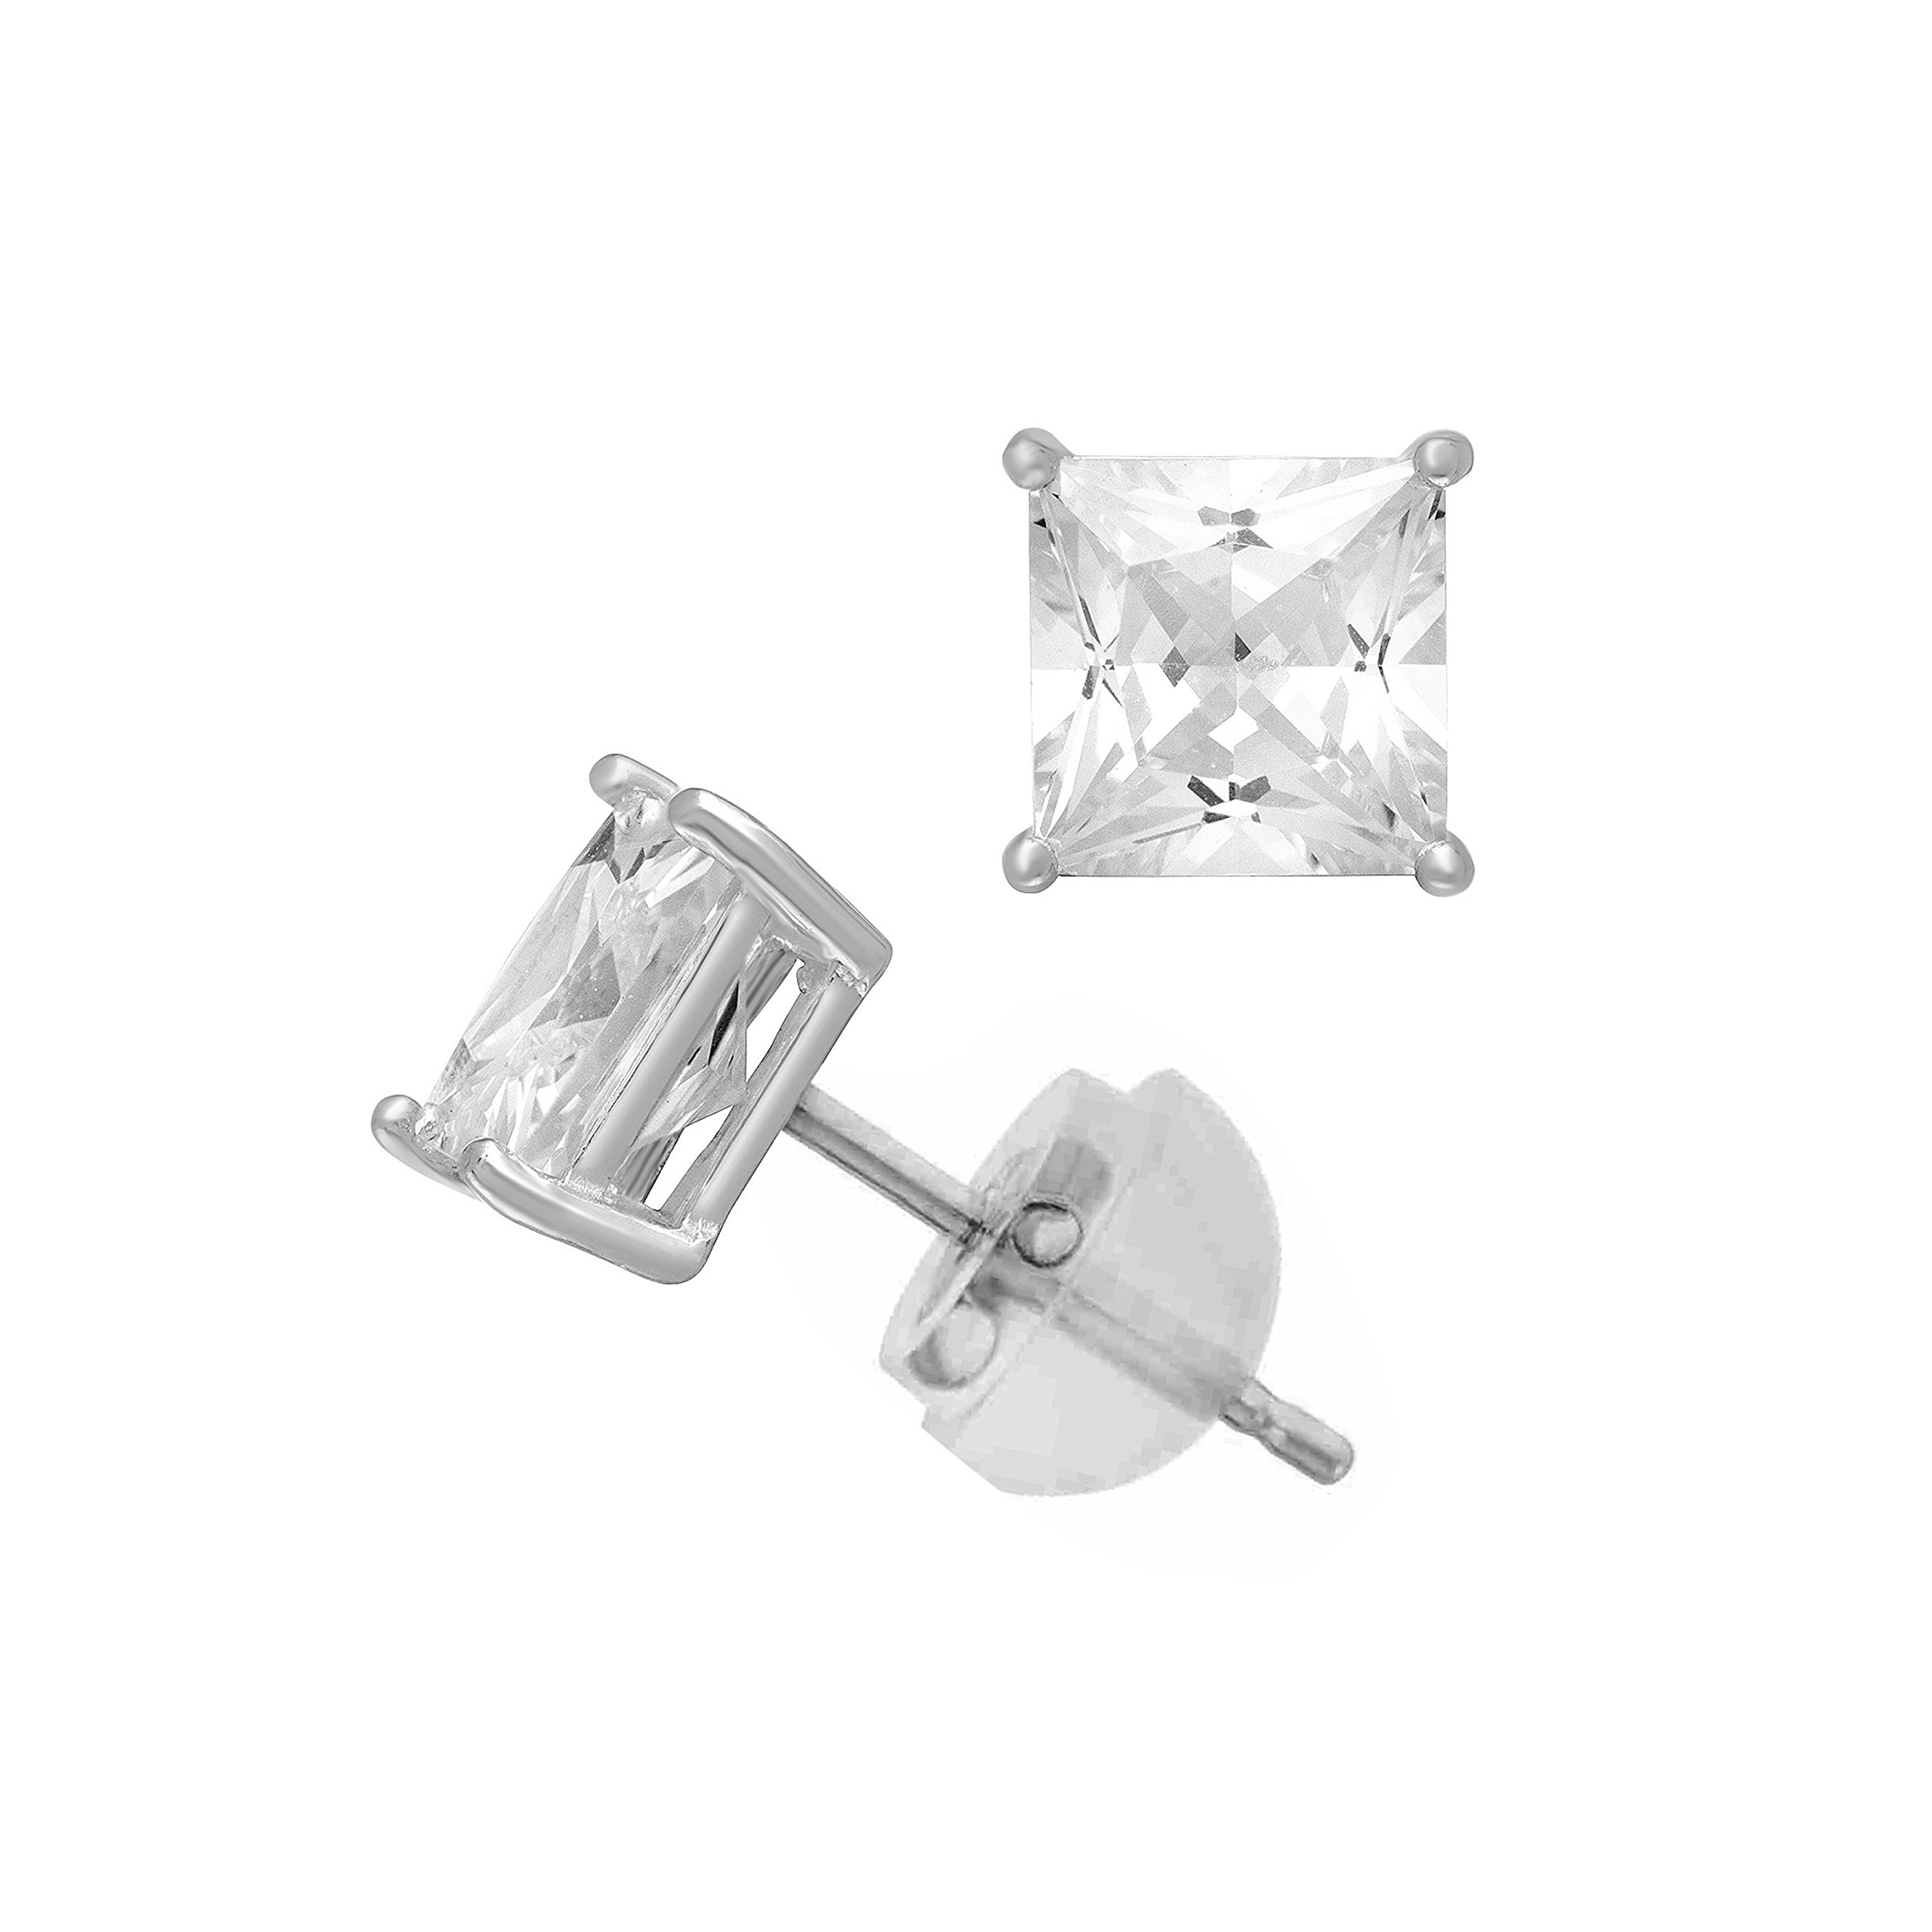 14K White Gold Swarovski Cubic Zirconia Princess Cut Stud Earring Comfort Fit -3mm